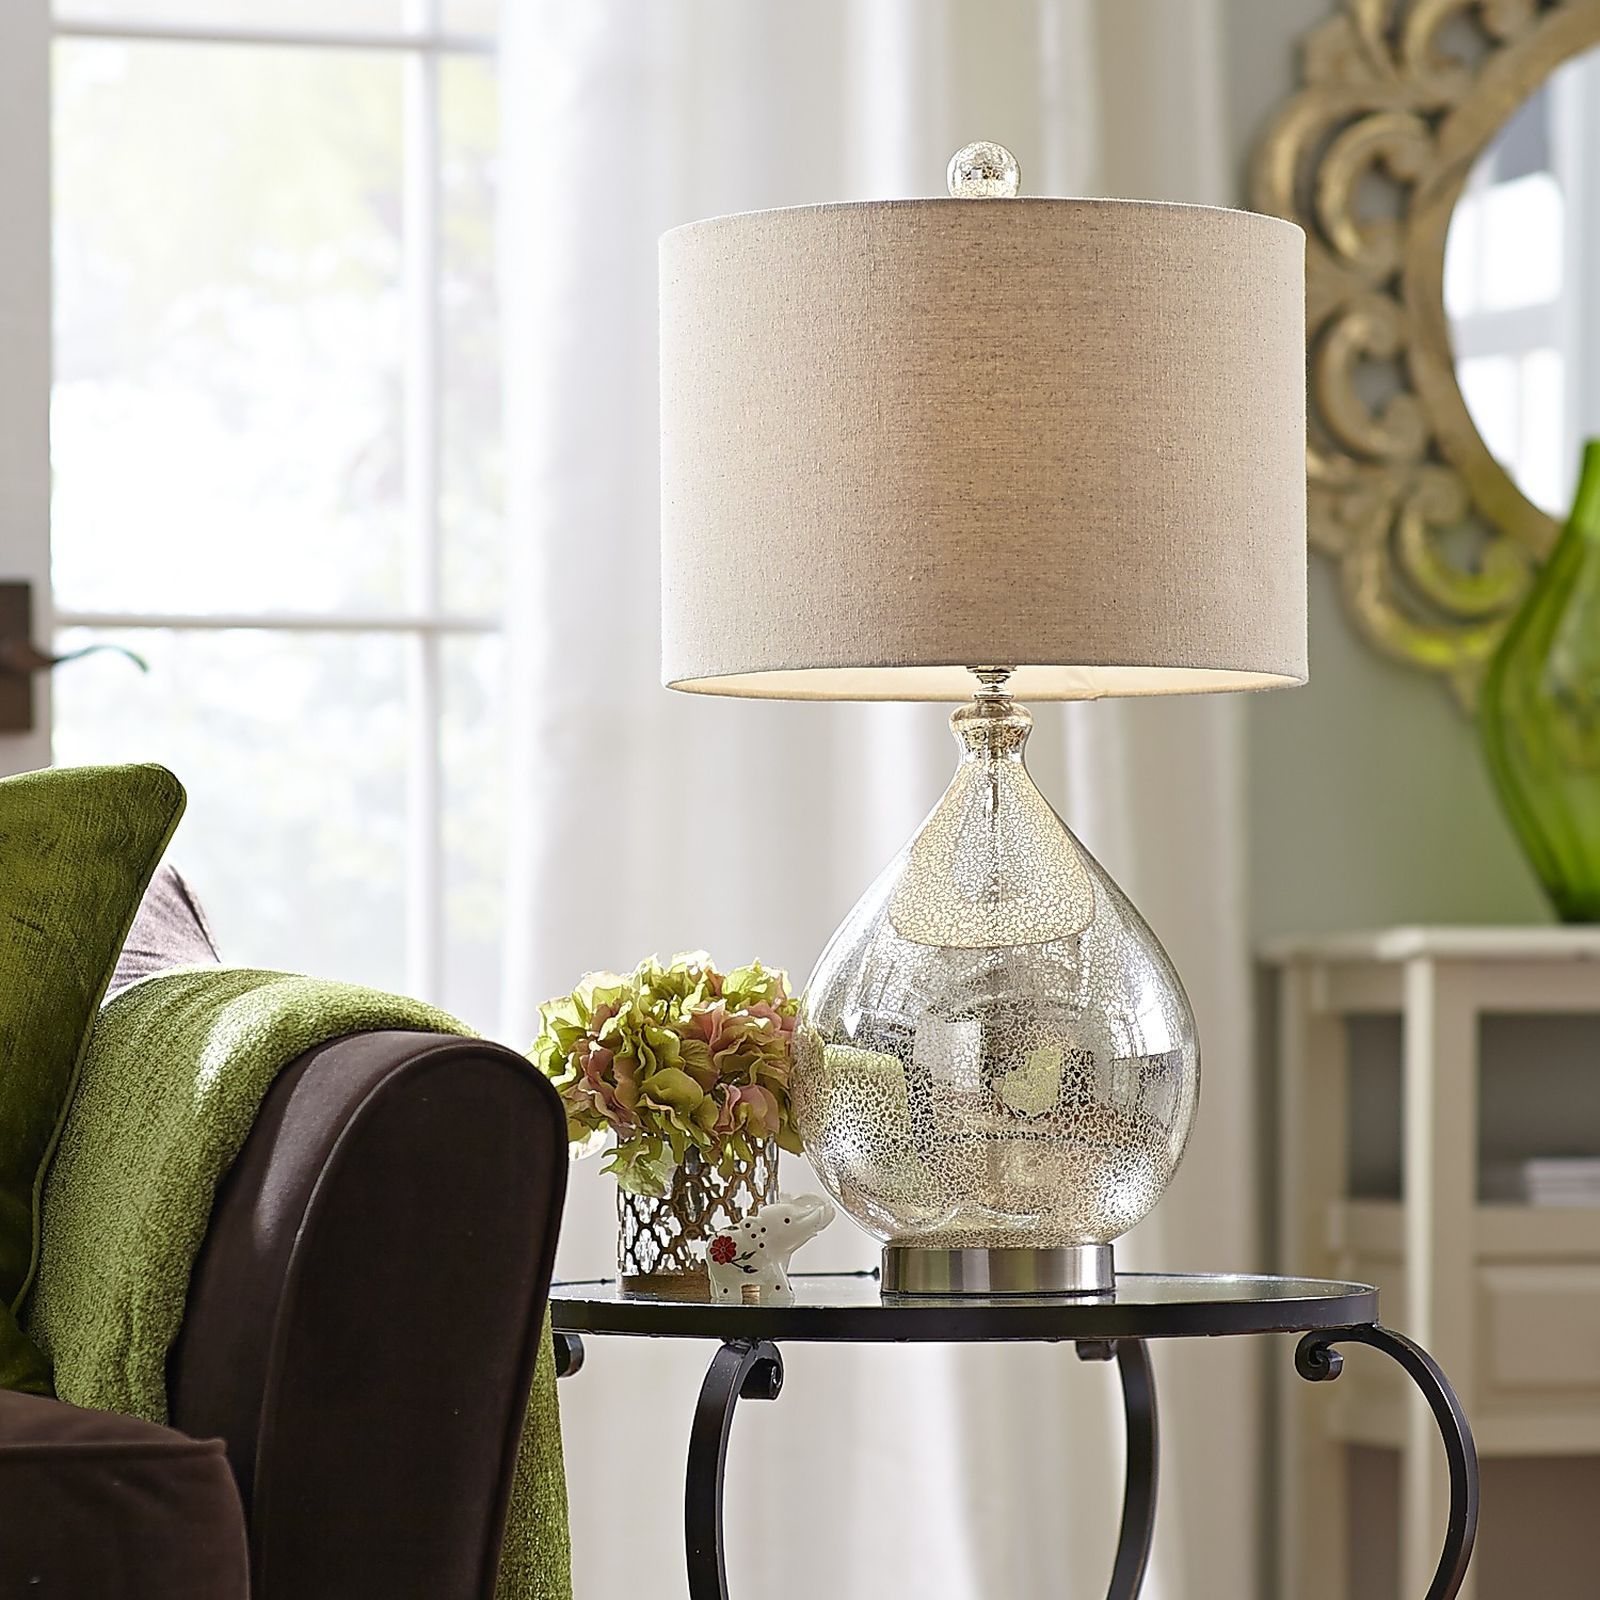 Need Living Room Lamps We Can Get Cheap Ones From Tj Maxx